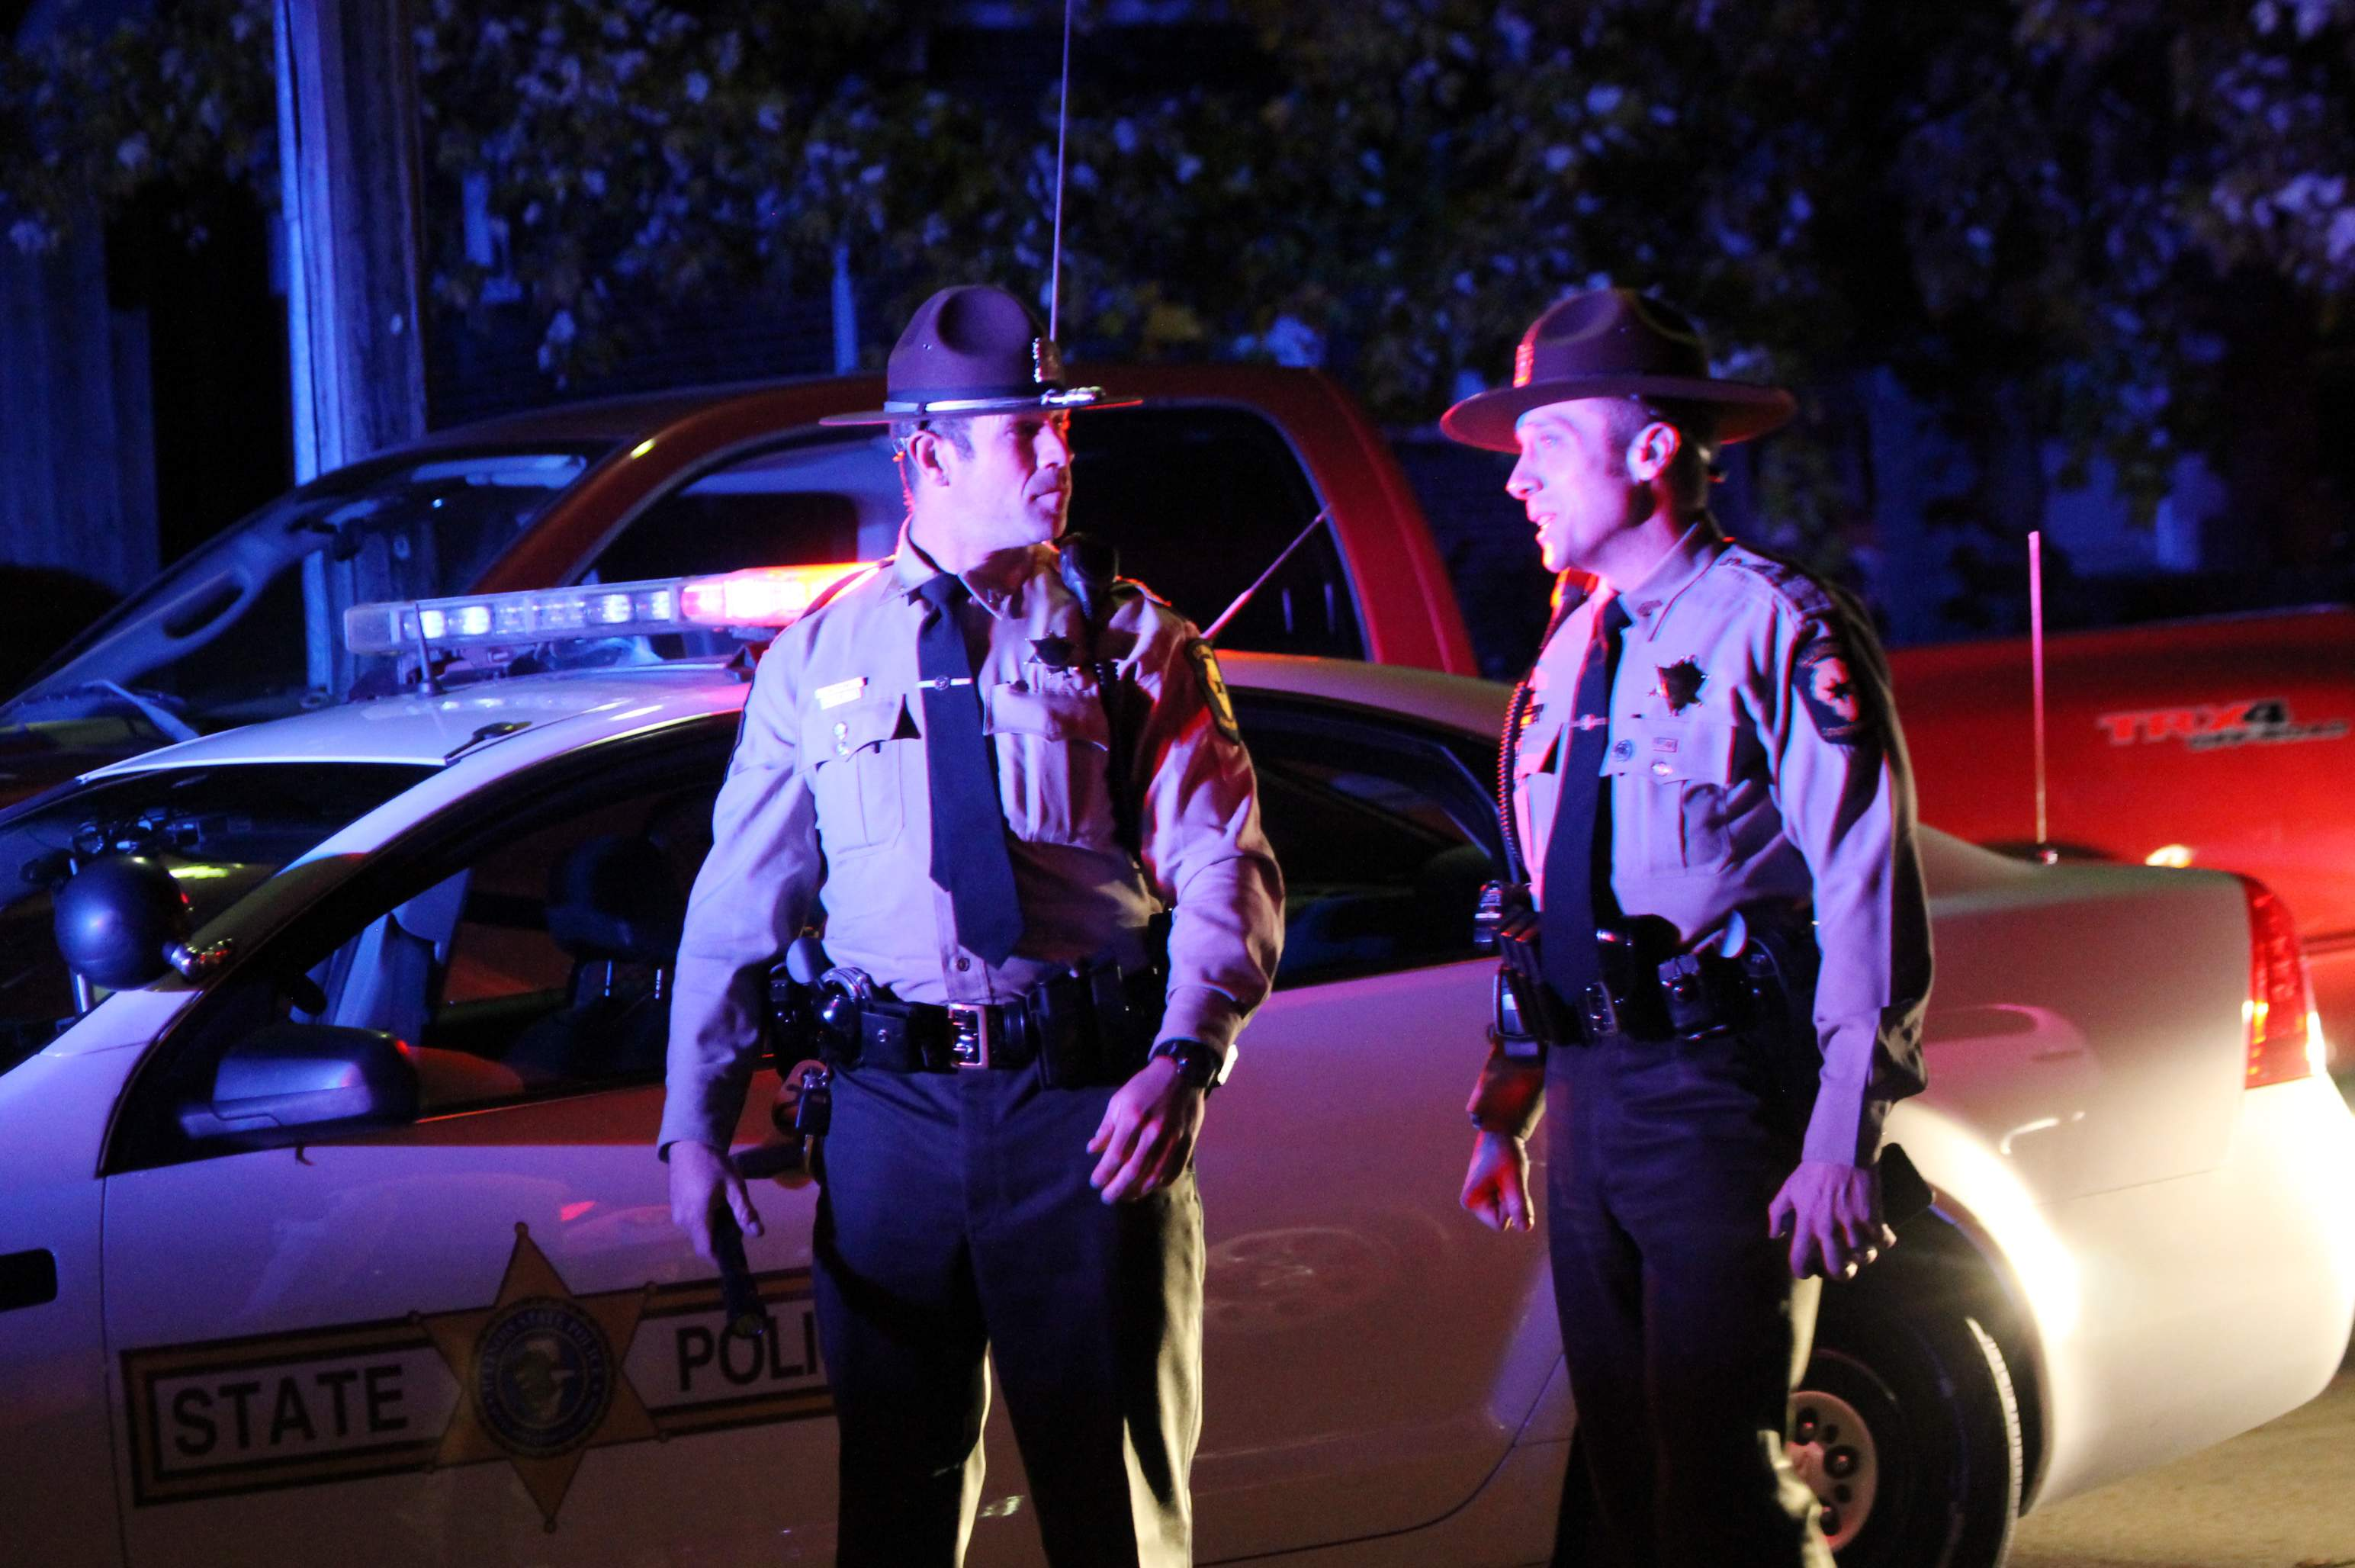 Two Illinois State Police troopers converse during the standoff.